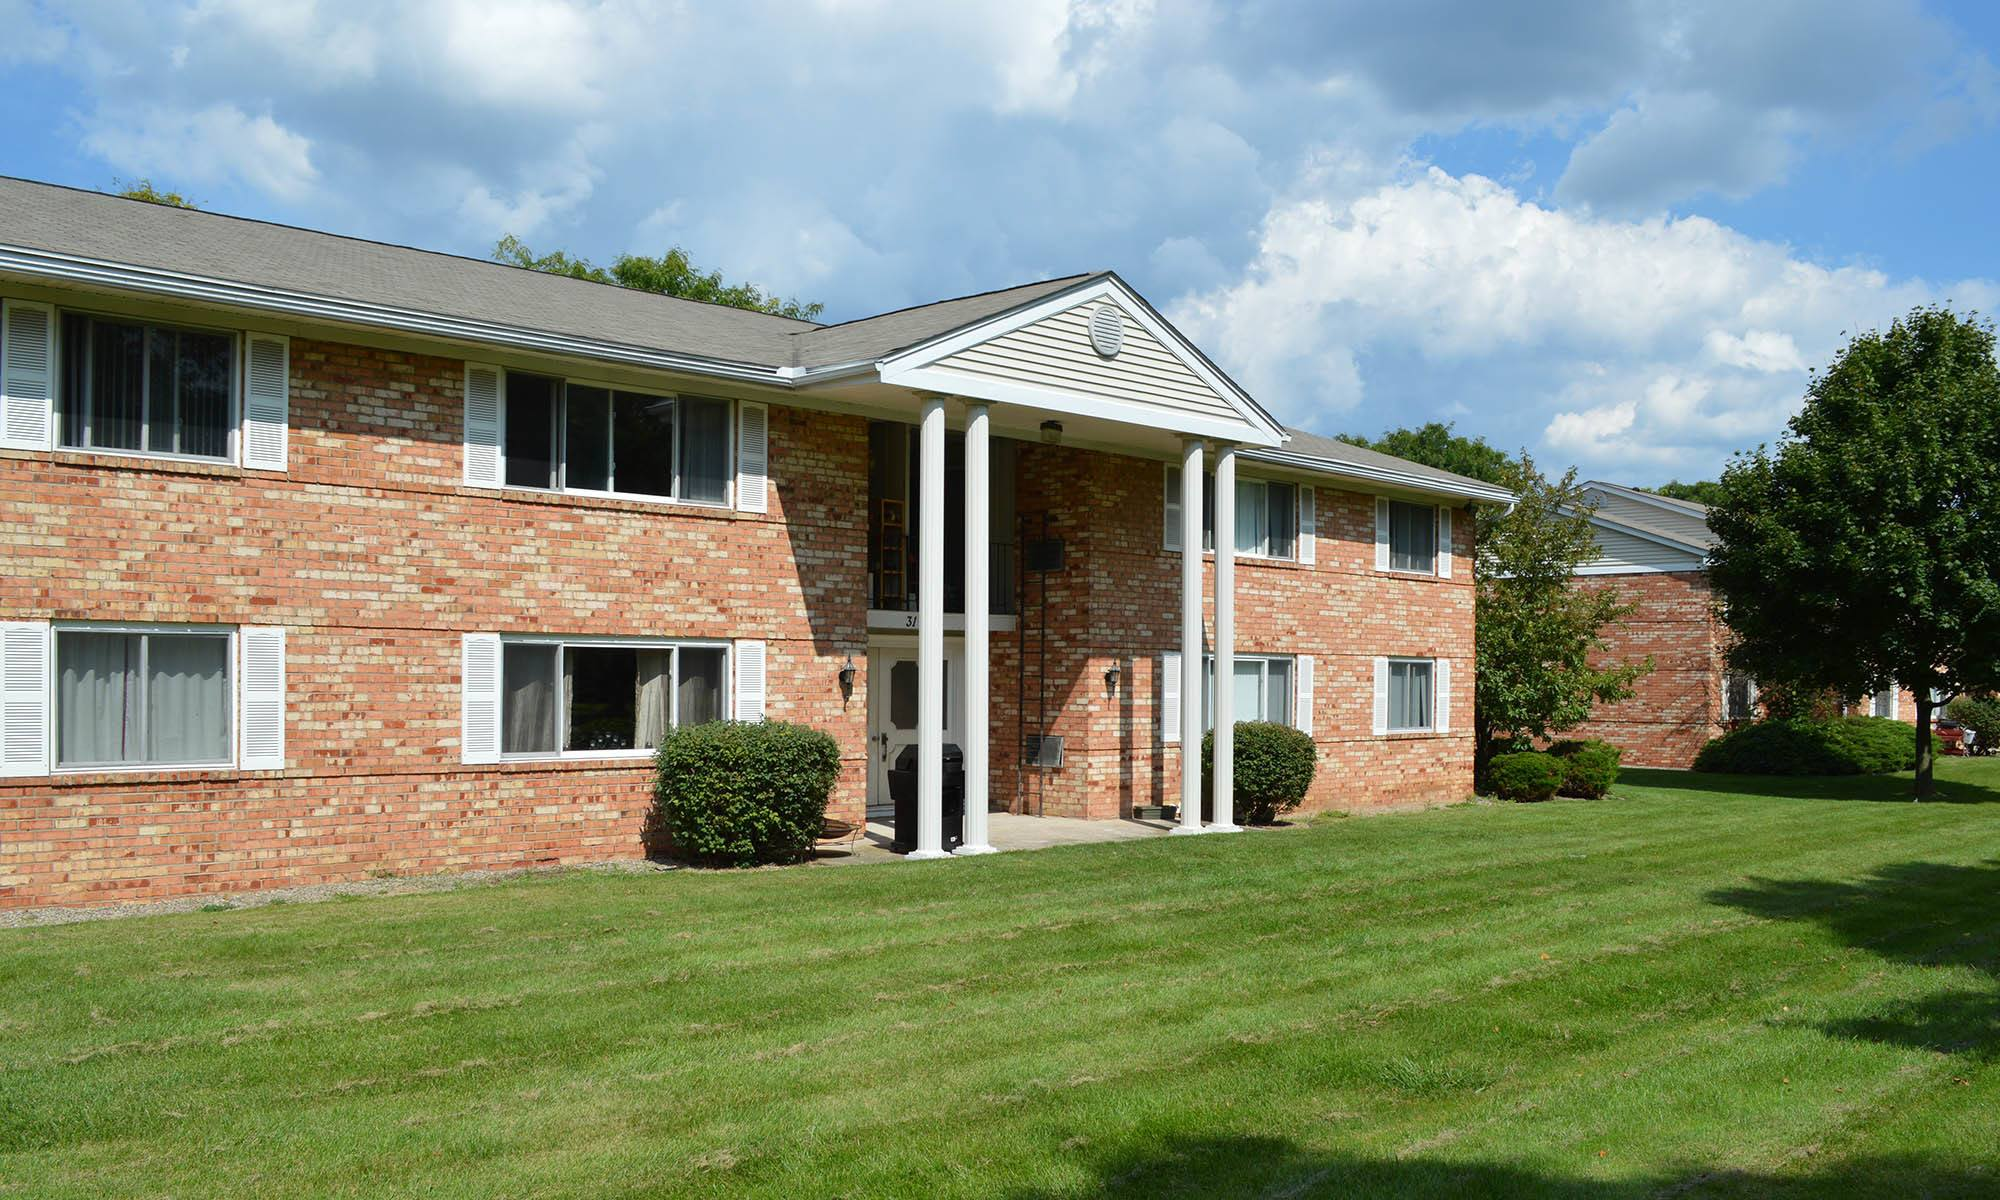 Apartments in Henrietta, NY